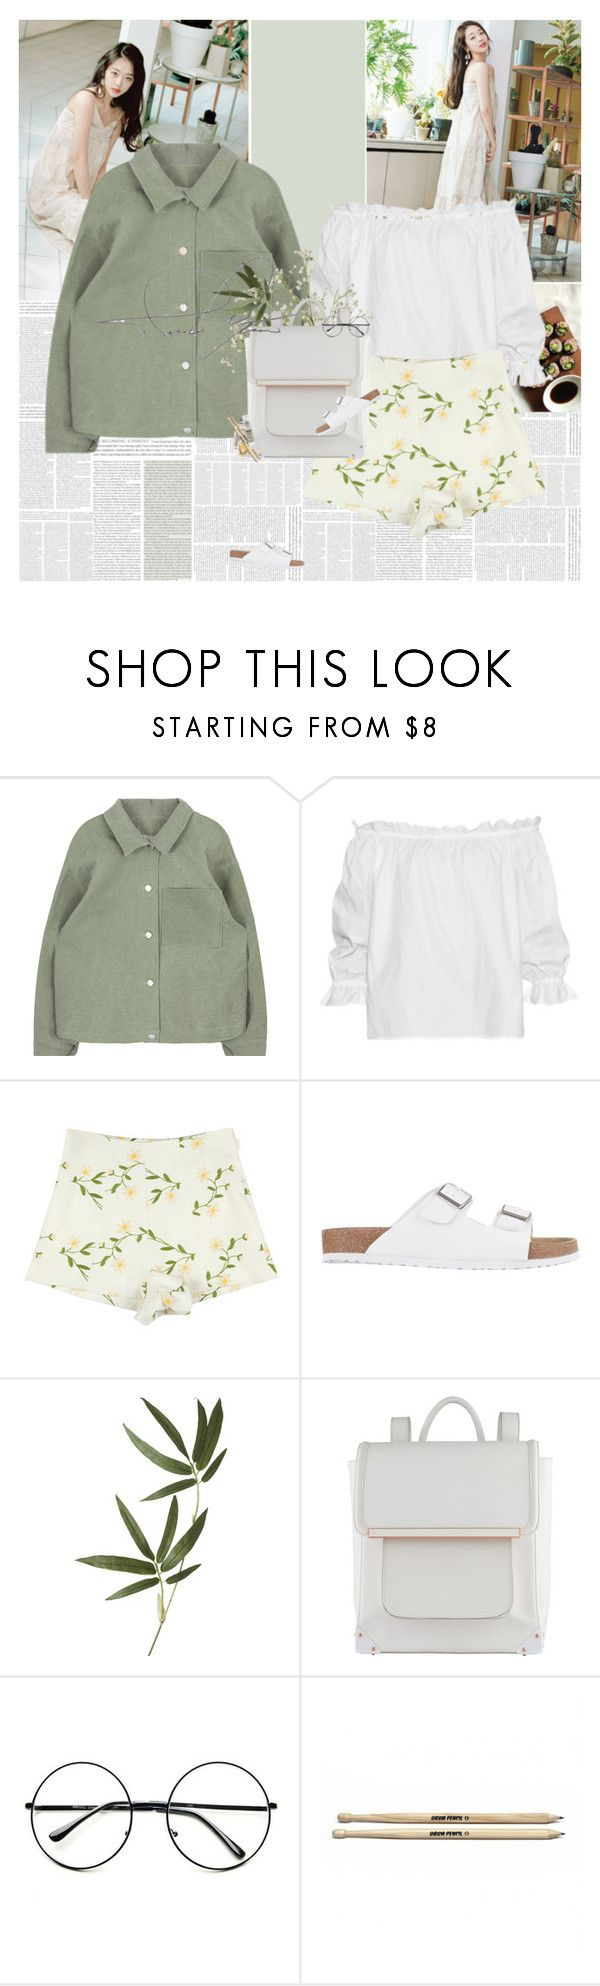 """""""If the wind blows, it'll be good."""" by e-laysian ❤ liked on Polyvore featuring Isolda, Lipstik, Crate and Barrel, ALDO, Aesop, Retrò, Le Labo, casualoutfit, backpacks and sulli"""